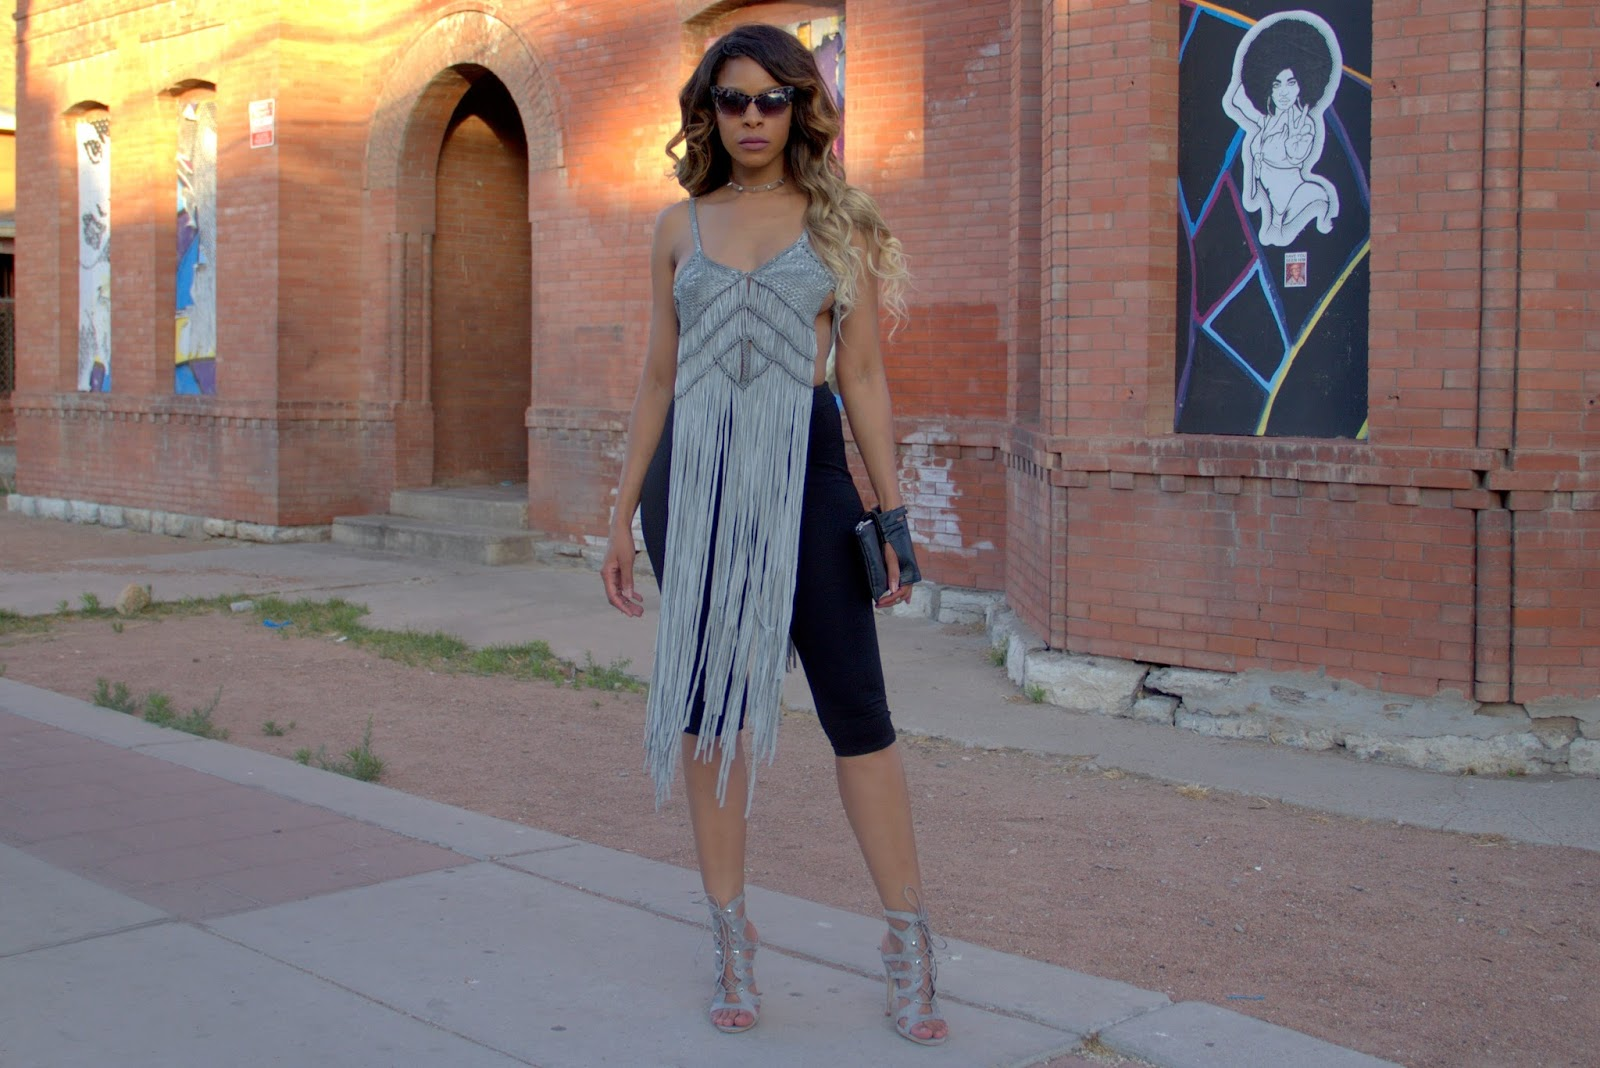 shayla drake, shayla greene, allthingsslim, festival outfit, summer outfit